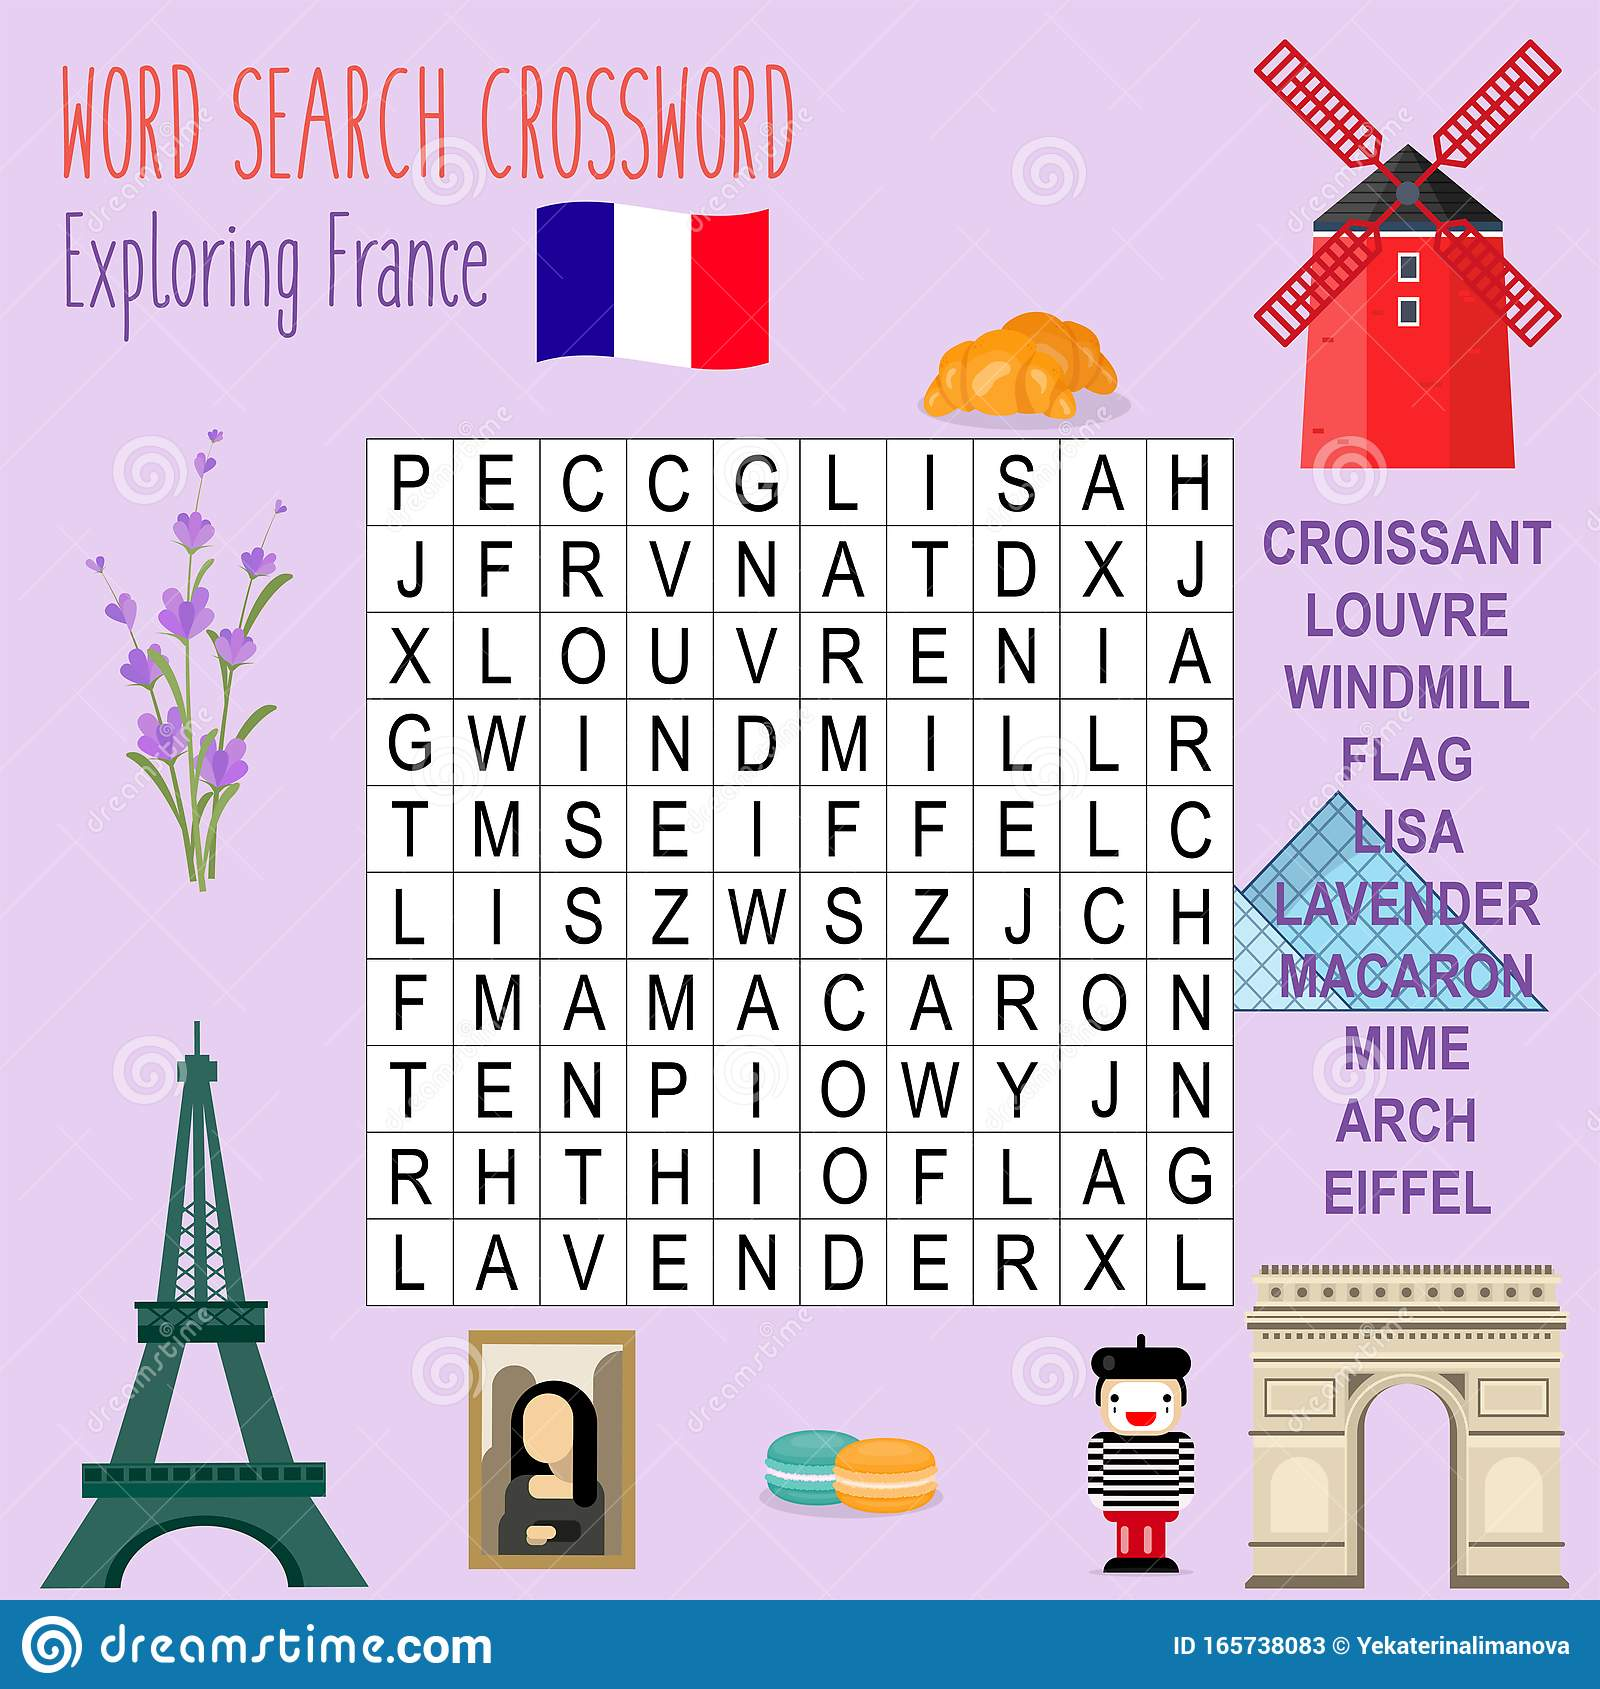 Easy Word Search Crossword Puzzle Journey To France